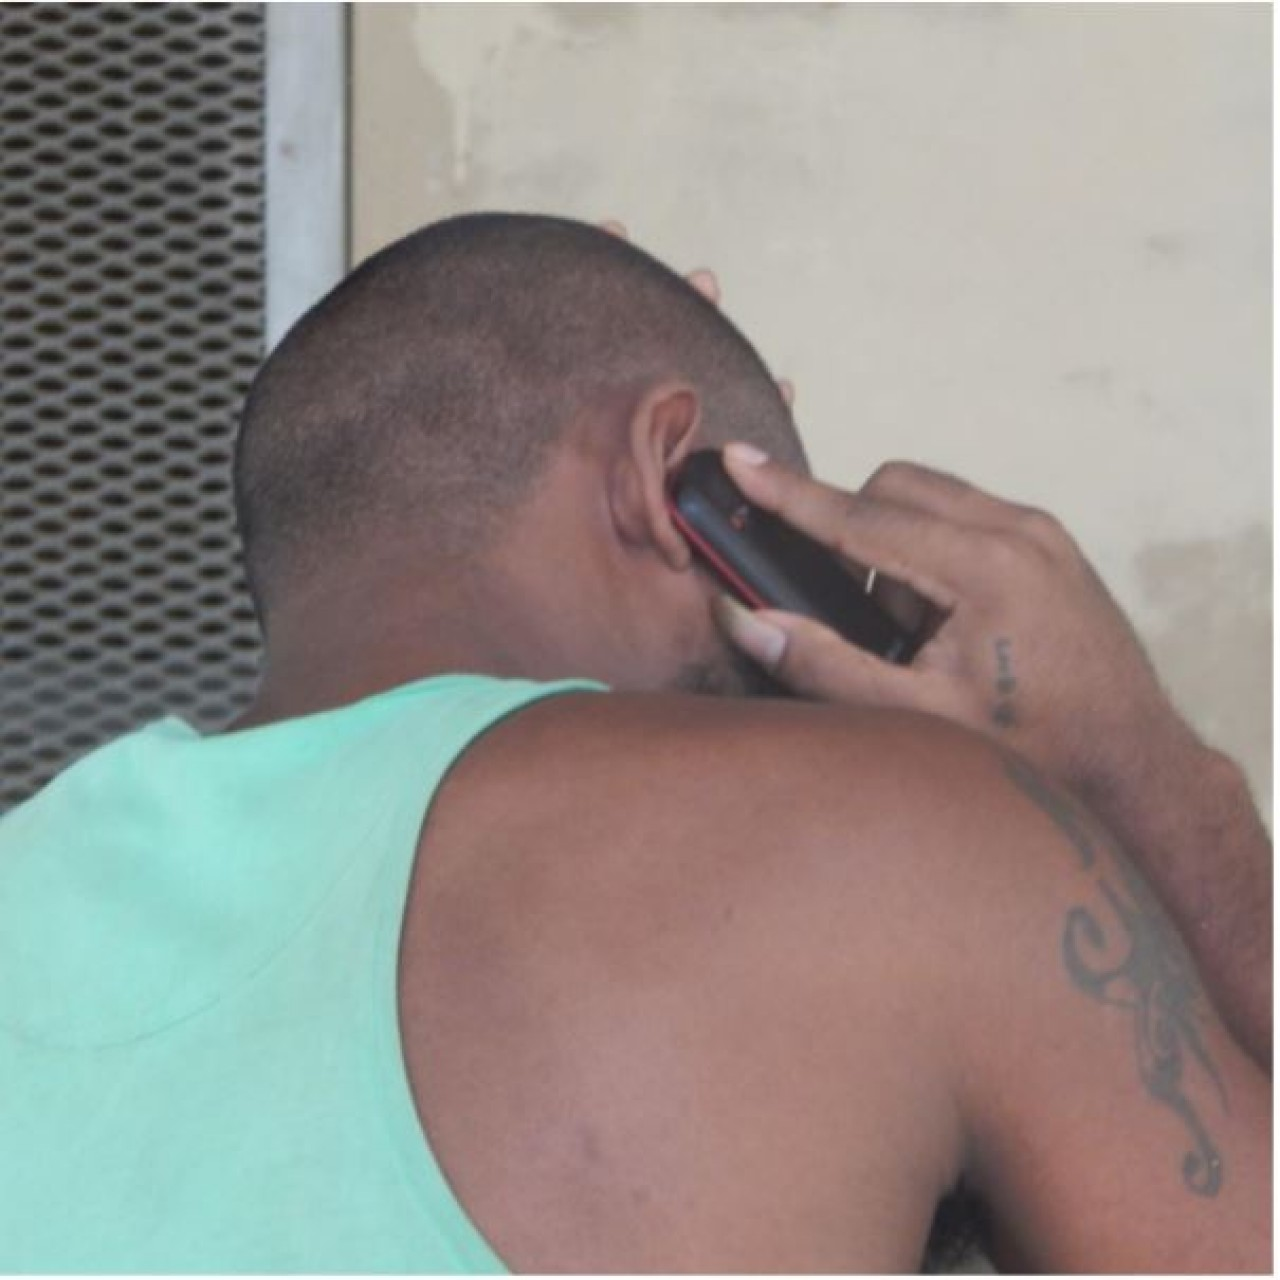 Covid 19 Detainees In Solomon Islands Call Their Loved Ones Icrc